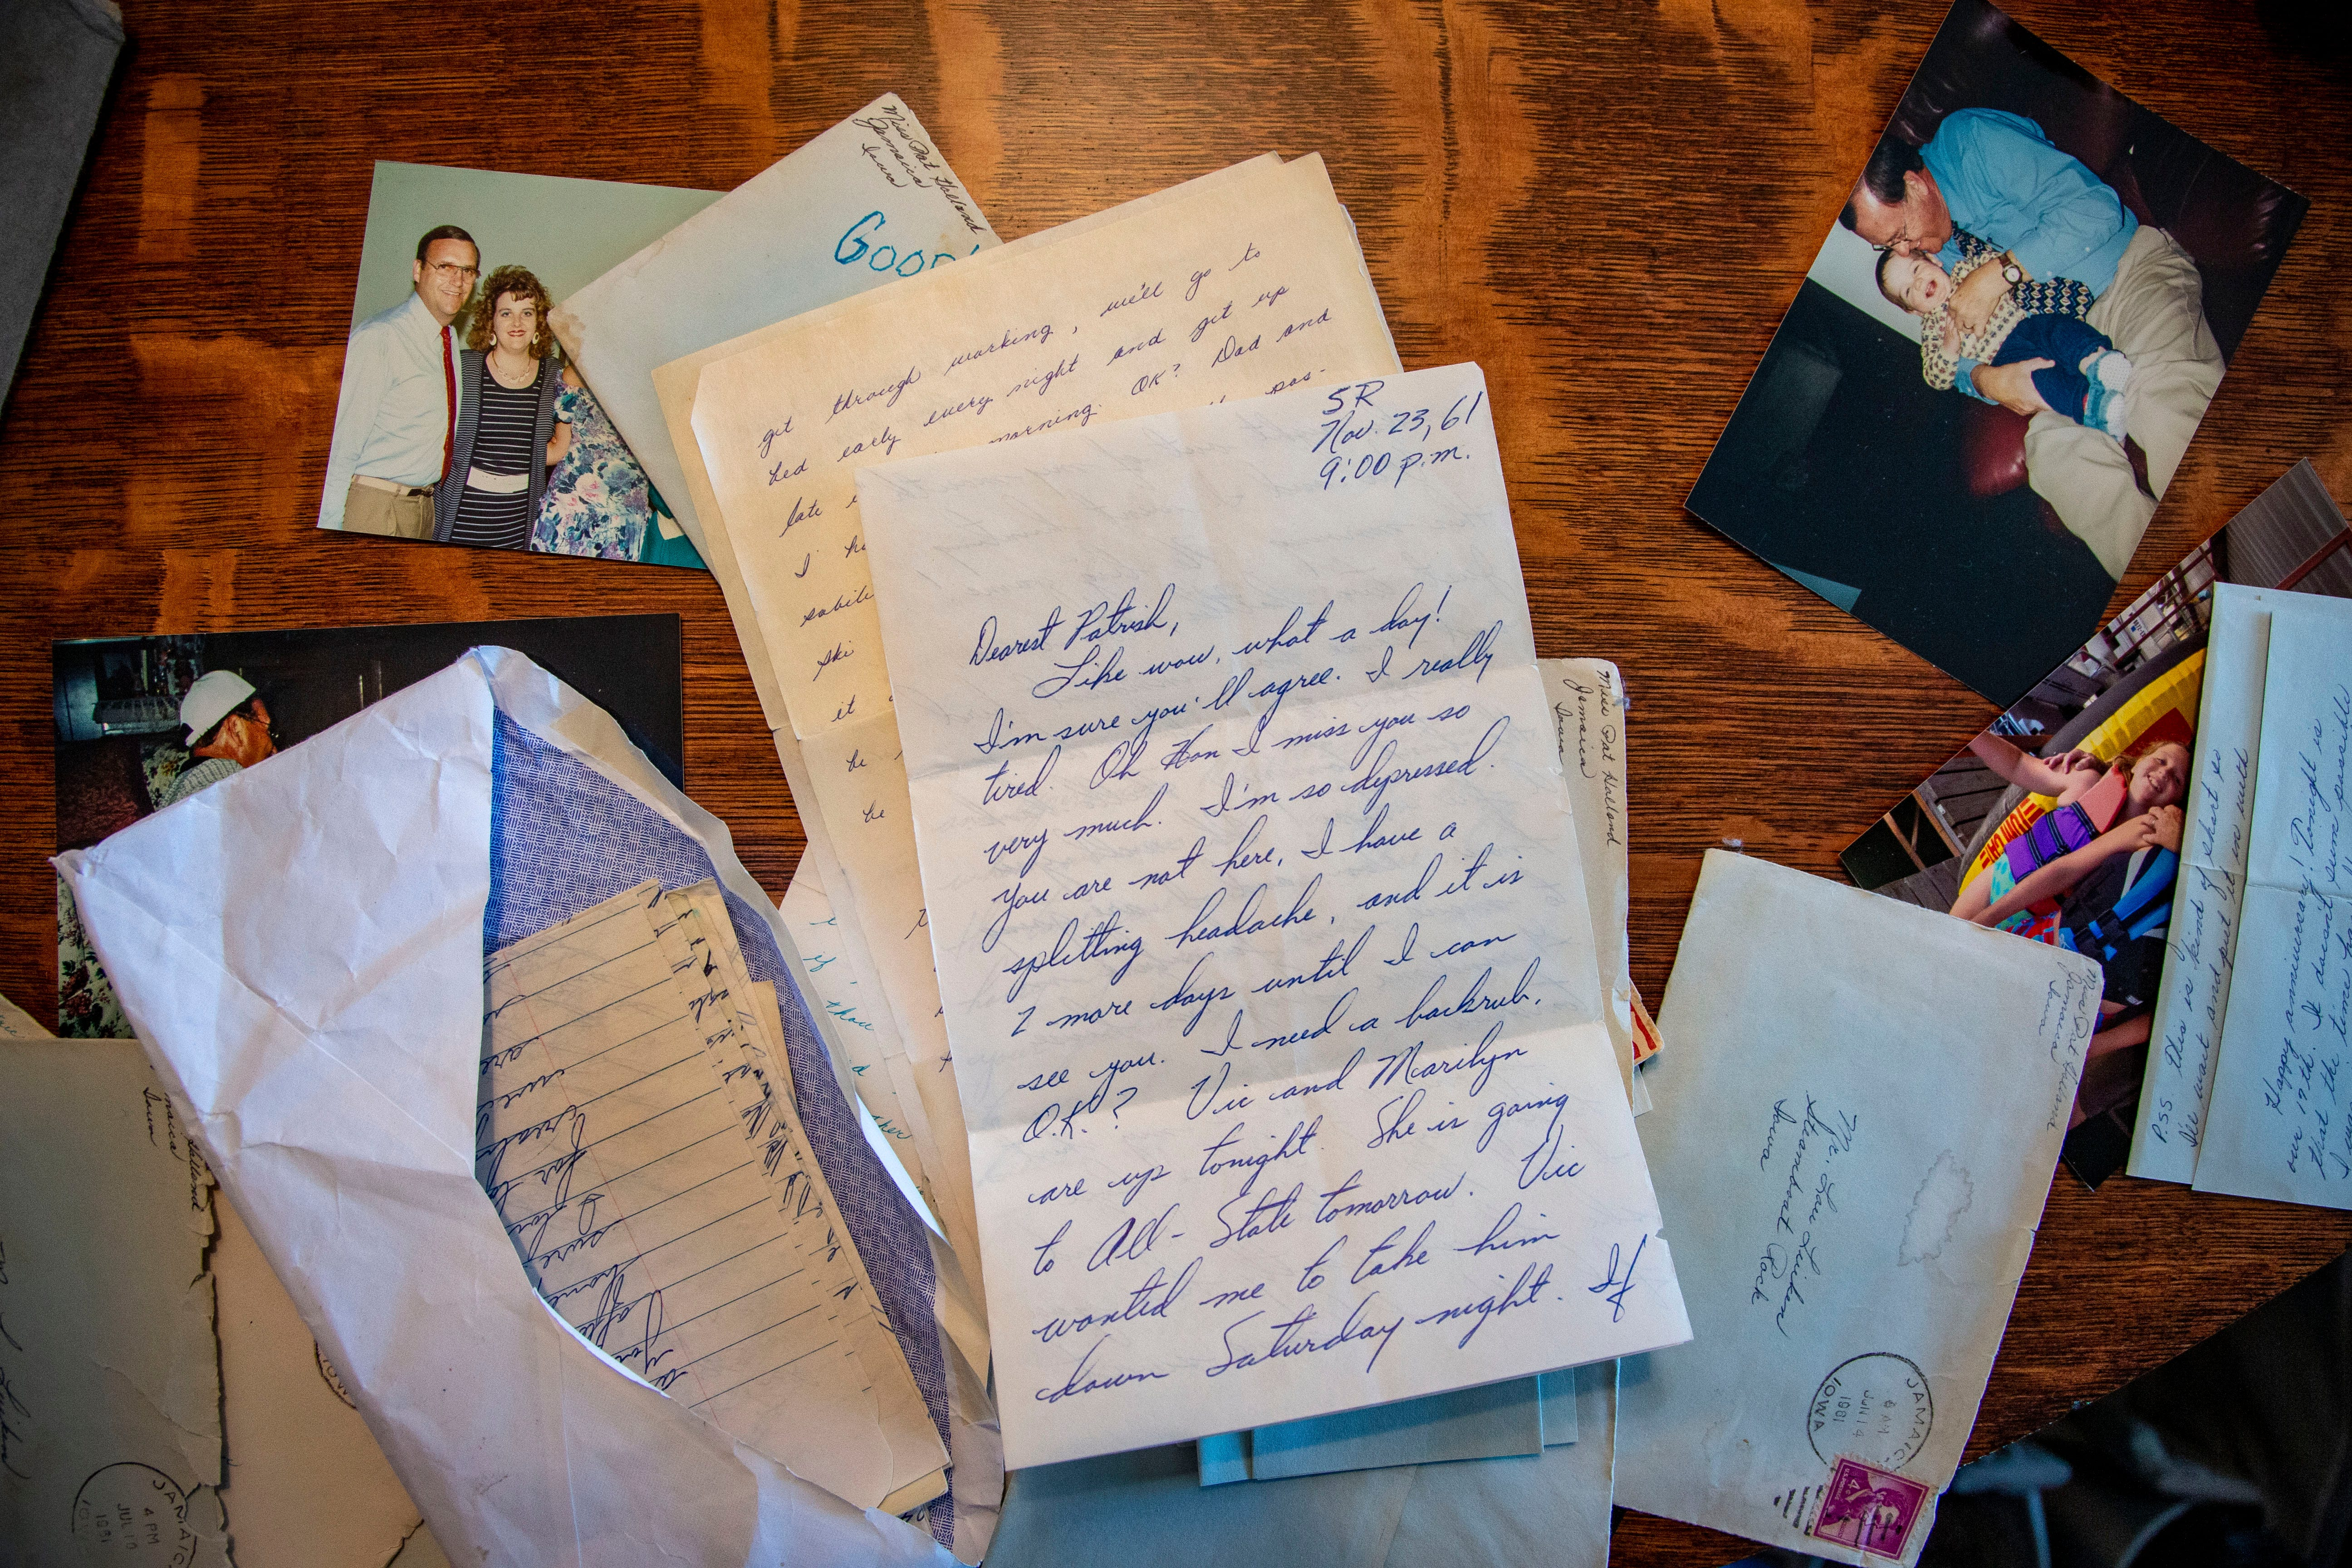 Suzanne Winkelpleck shares photos and love letters exchanged by her parents, Lou and Patty Luiken.